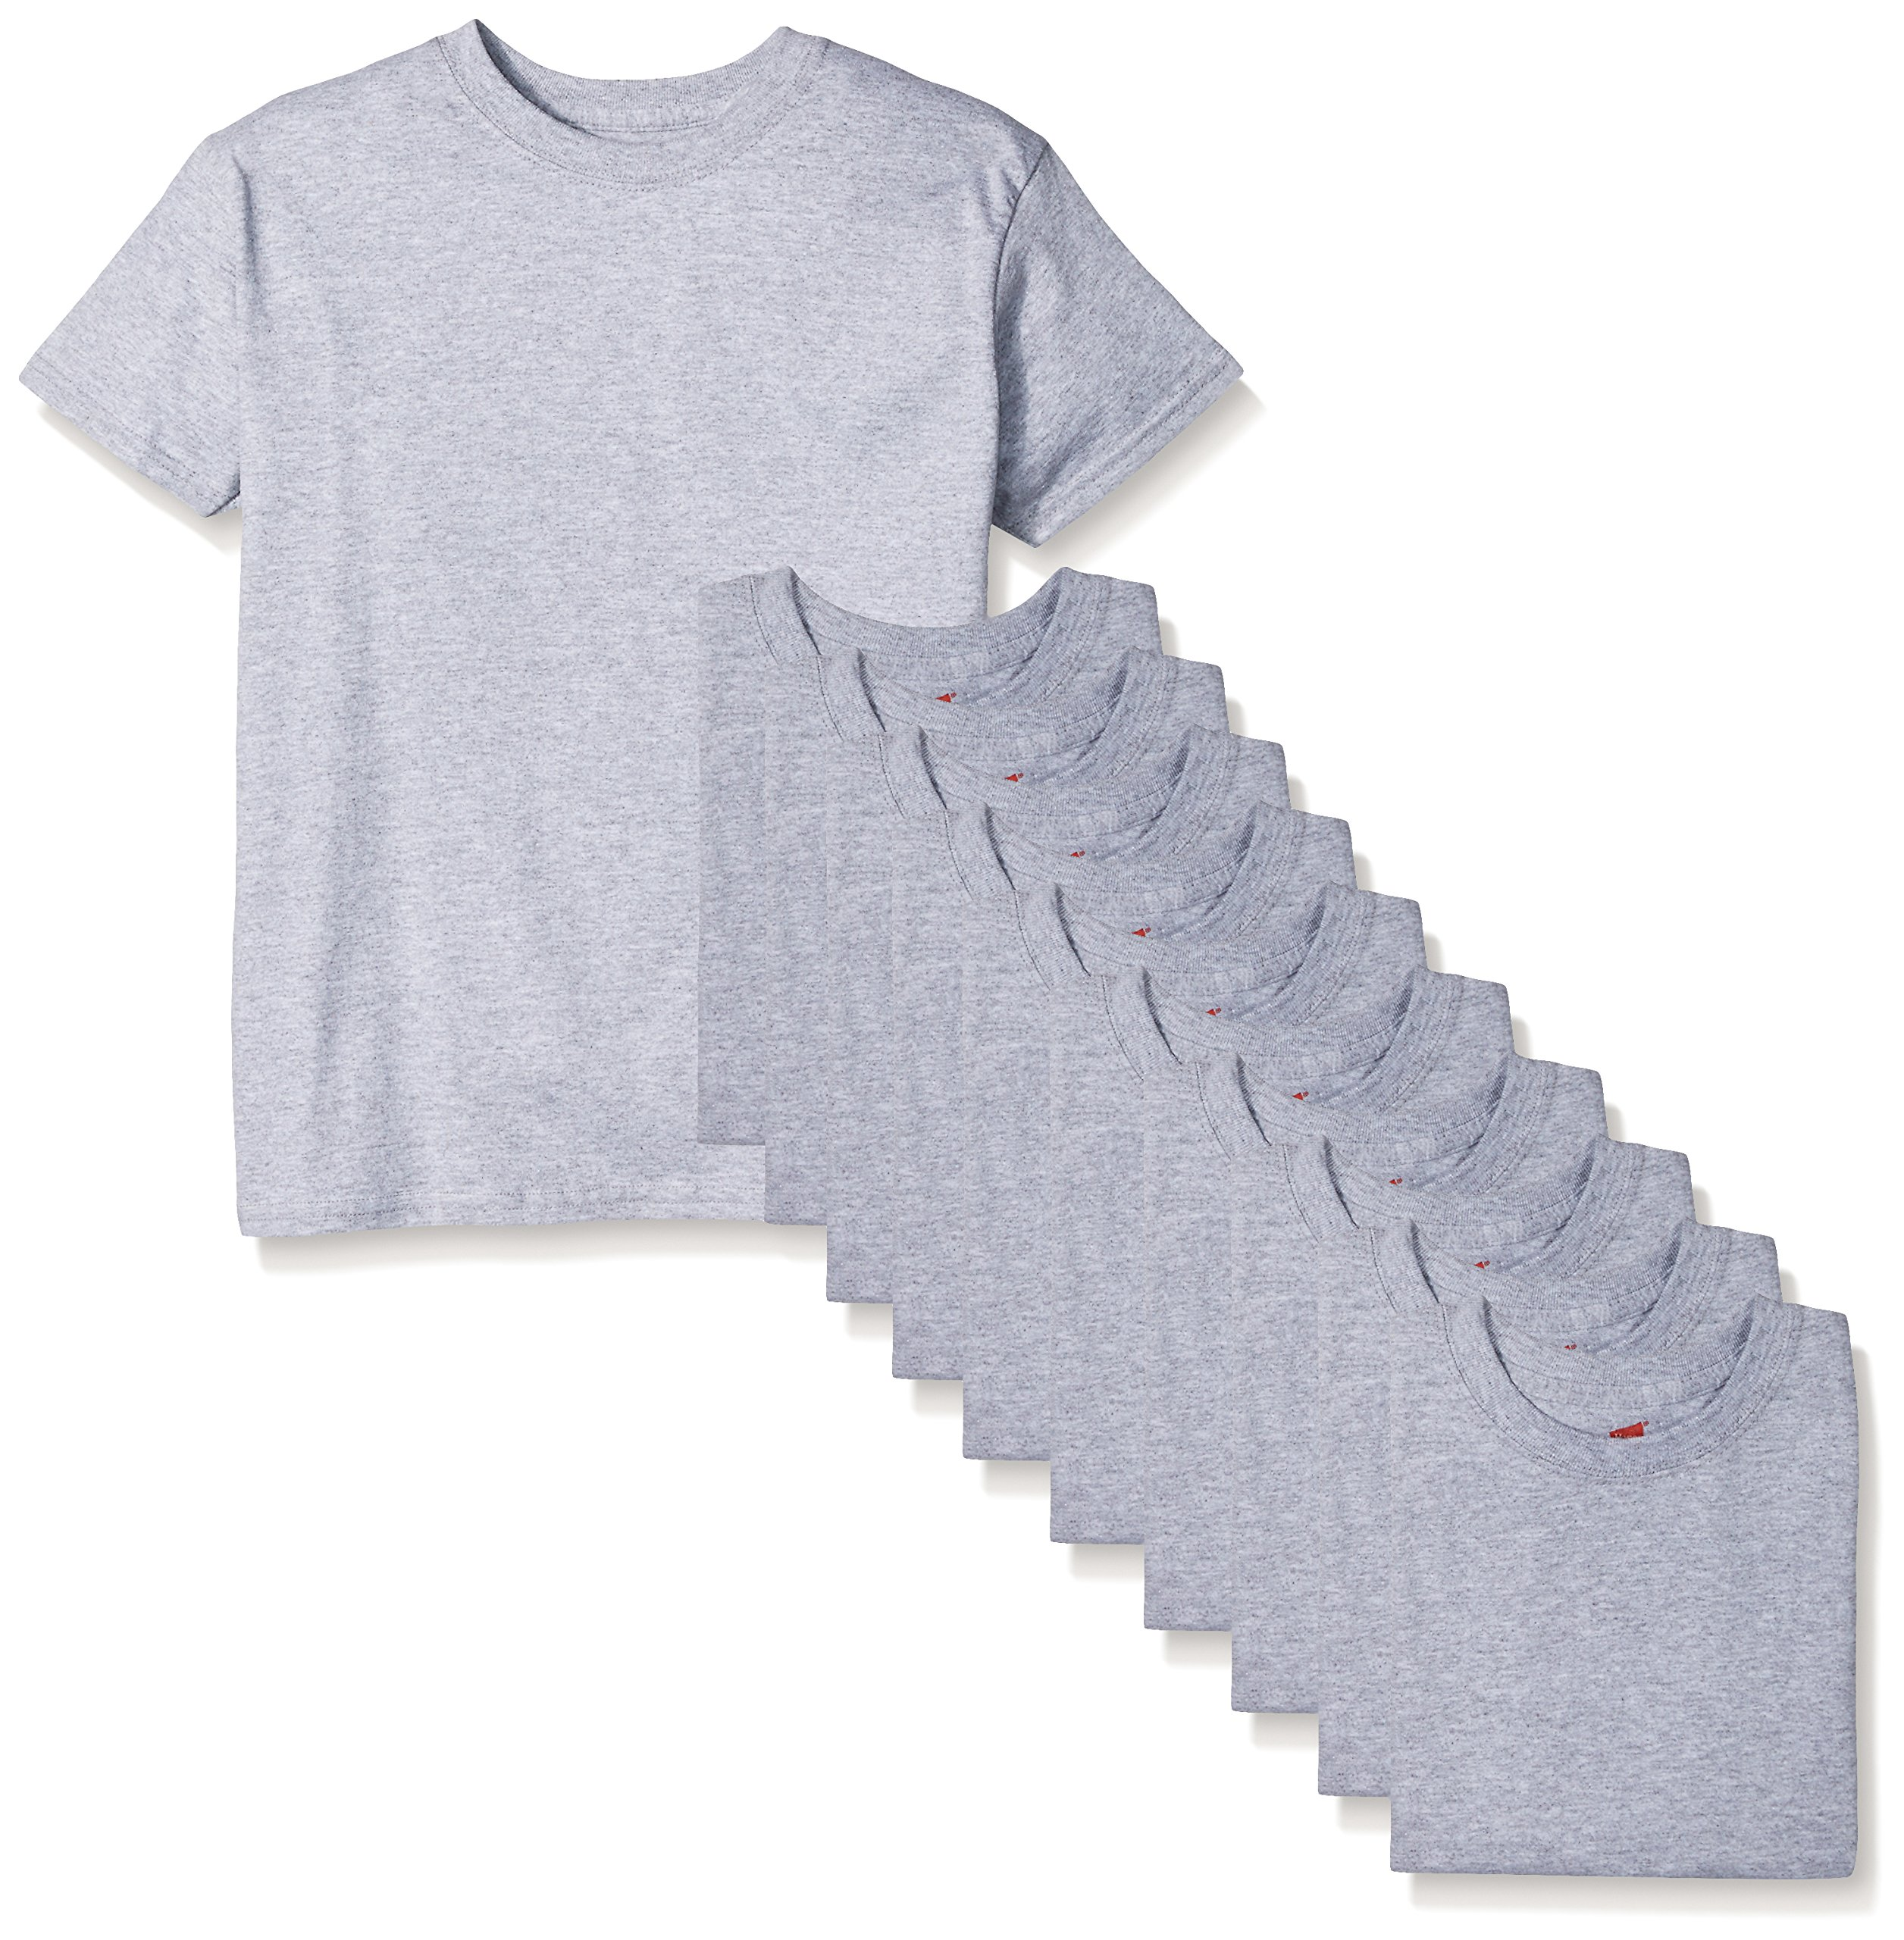 Hanes Big Boys' Comfortsoft T-Shirt (Pack of 12), Light Steel, X-Large